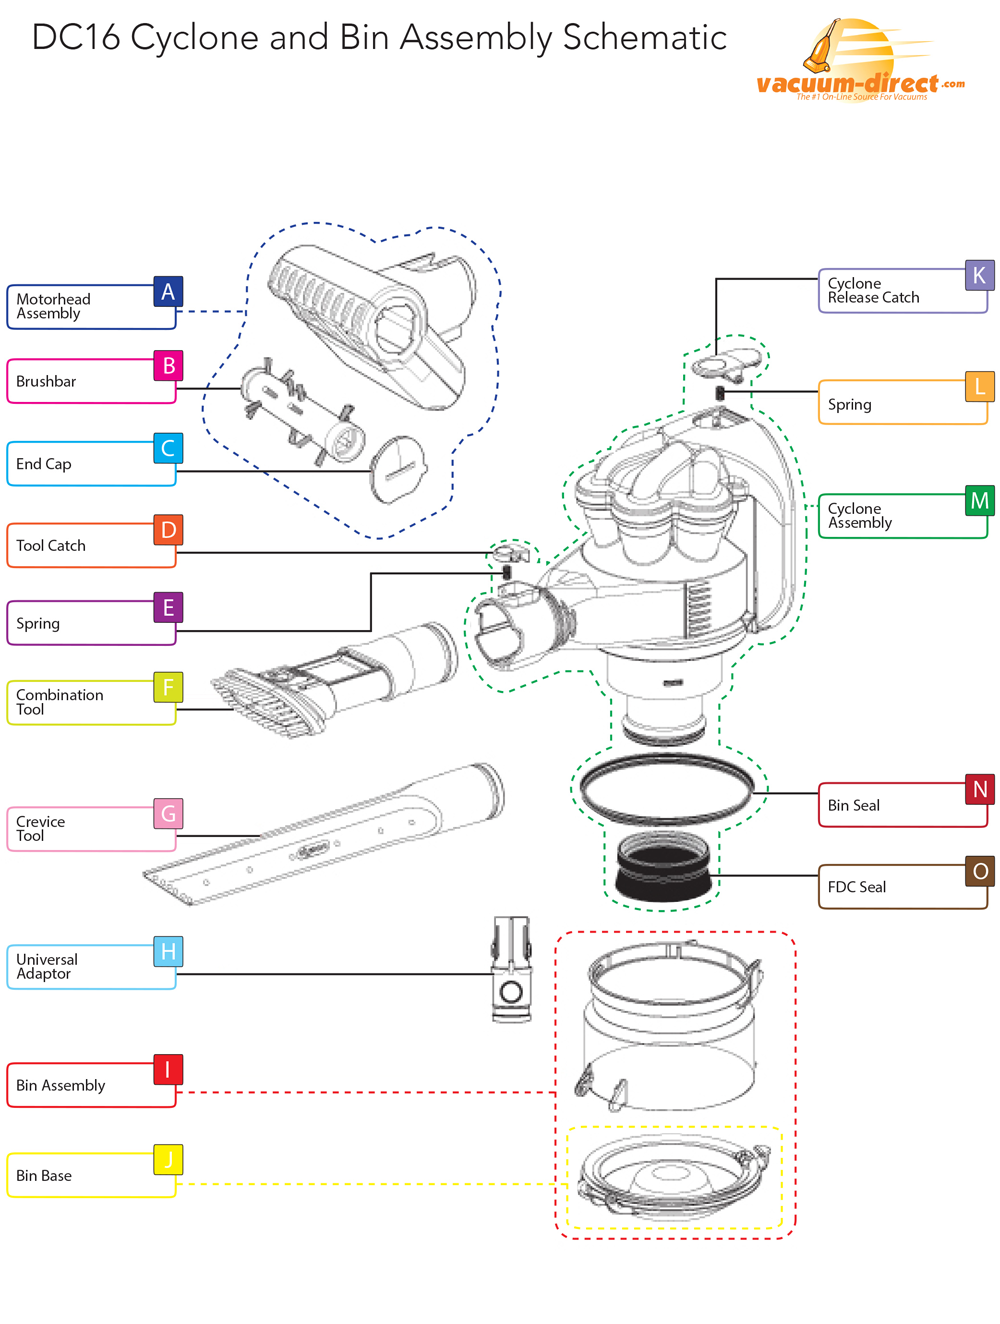 Dyson DC16 Cyclone & Bin Assembly parts diagram